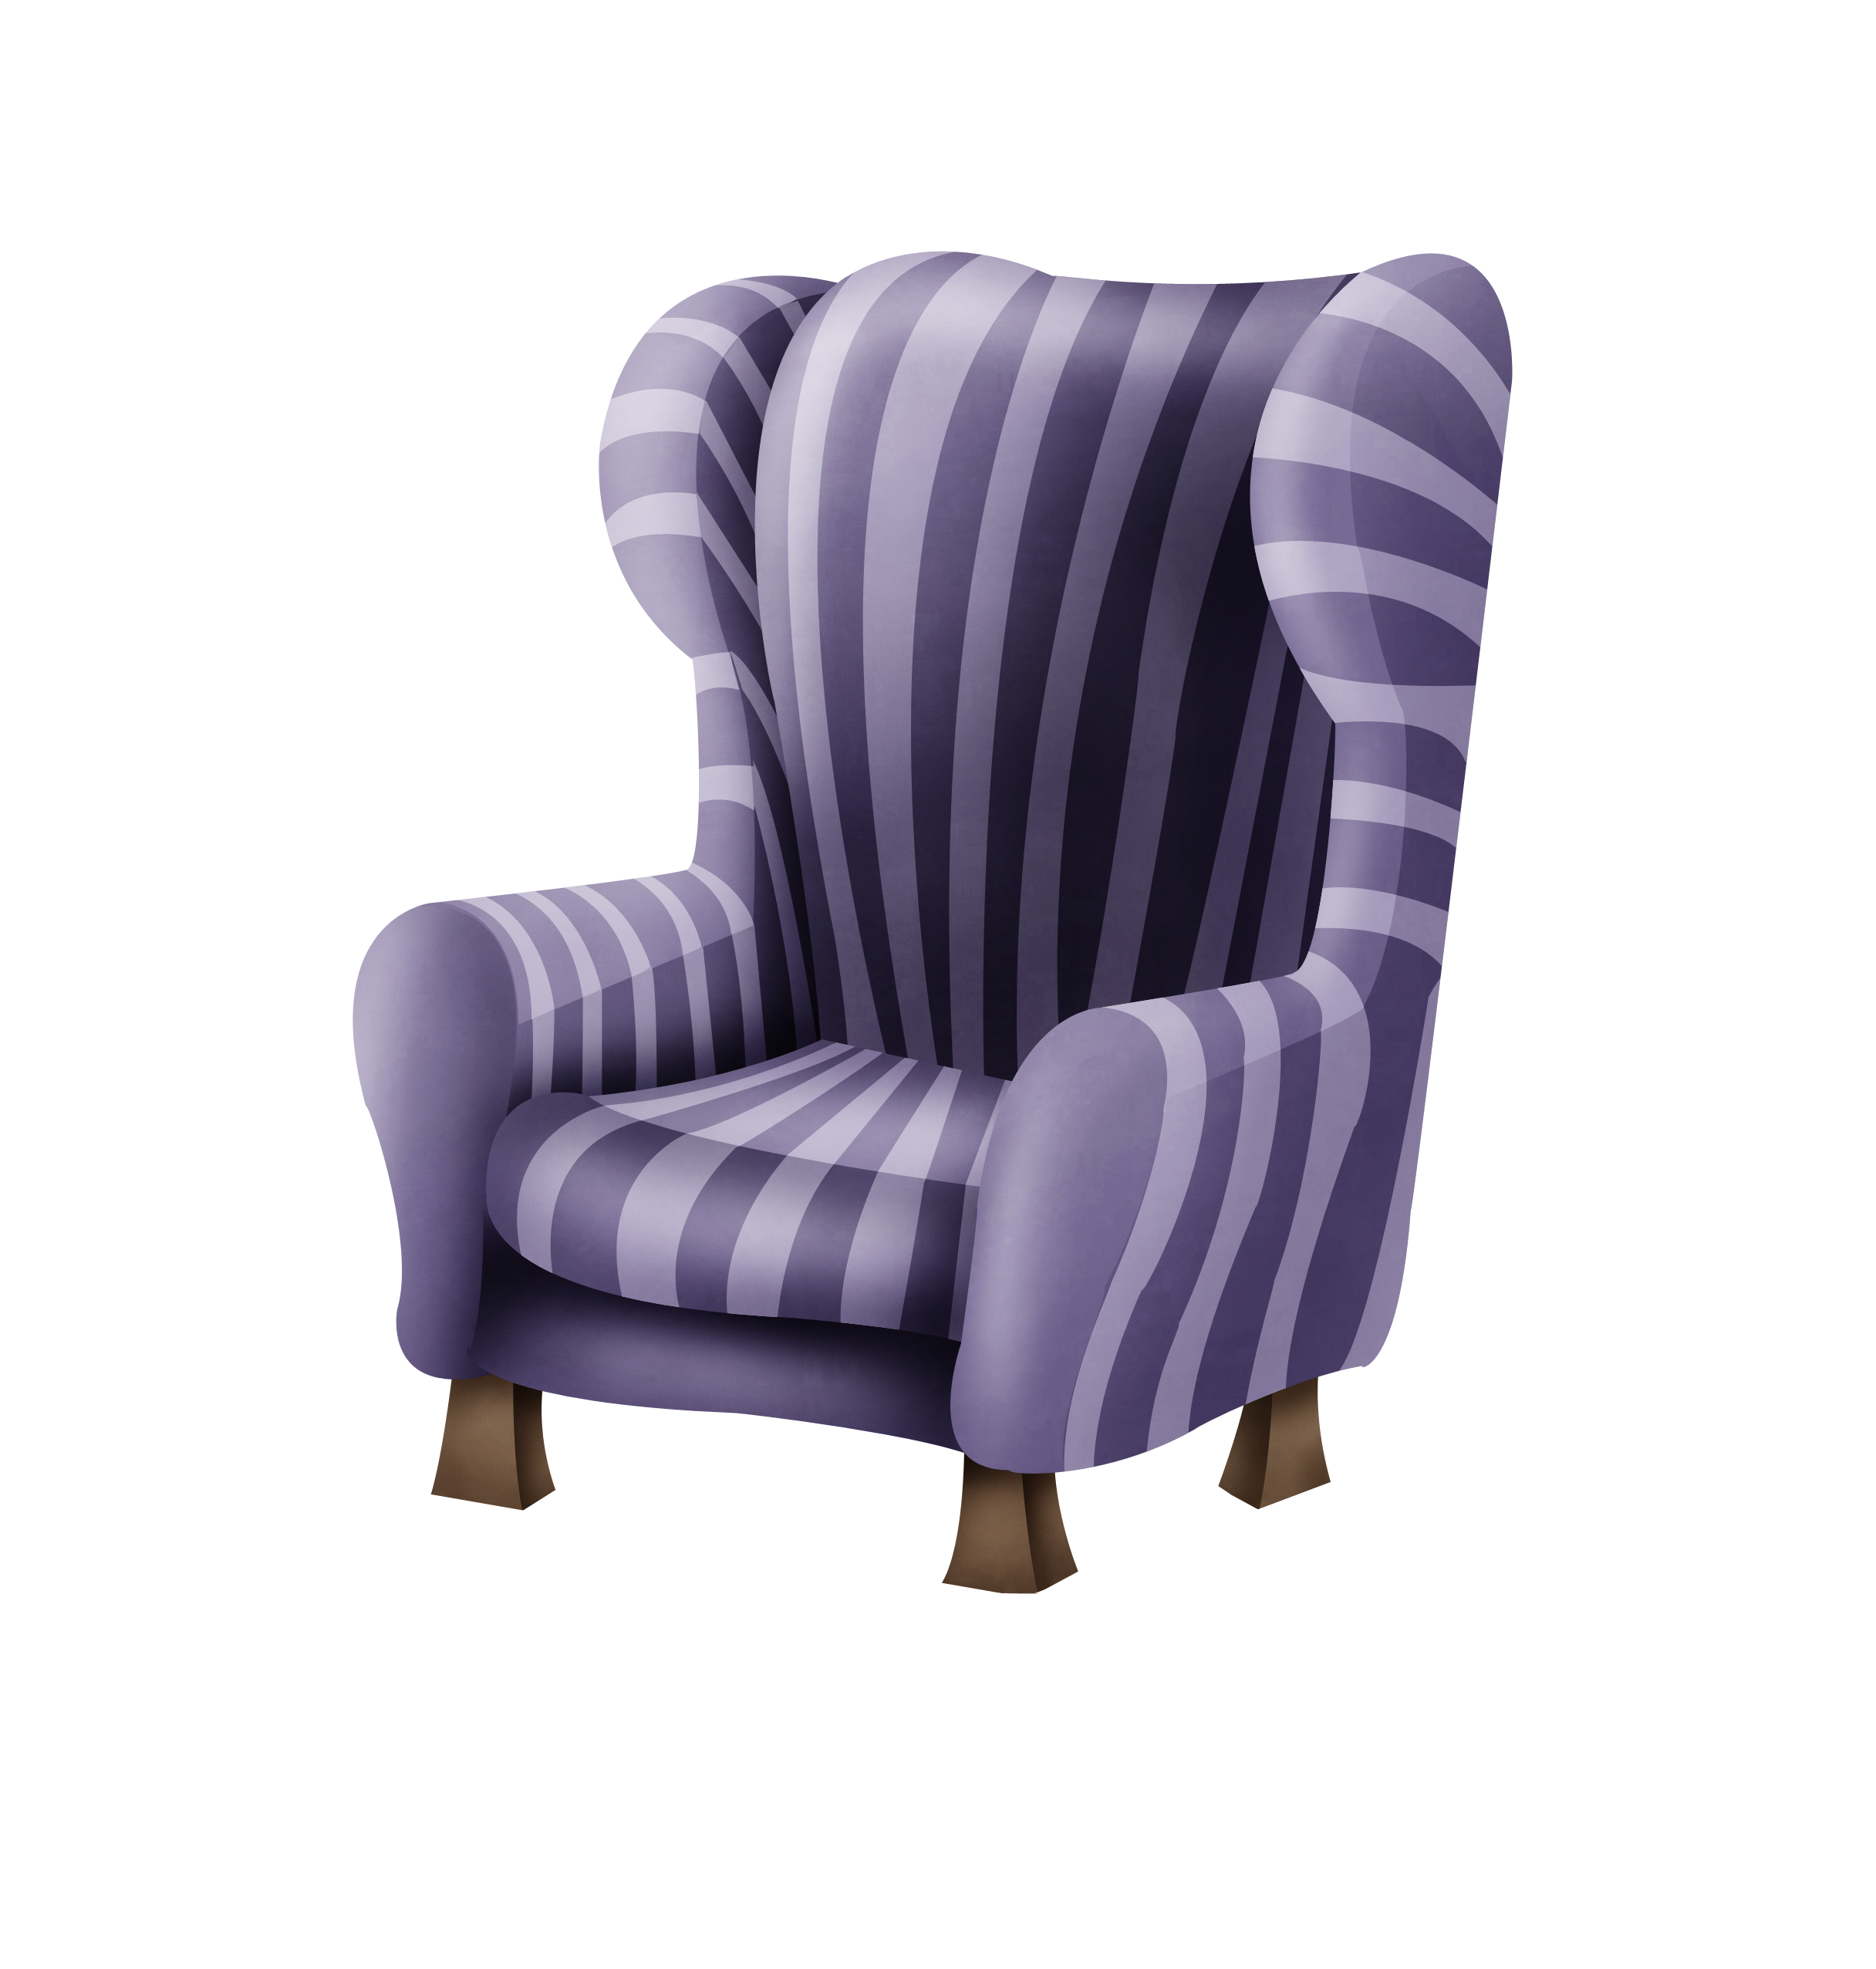 chaise fauteuil rocking chair. Black Bedroom Furniture Sets. Home Design Ideas